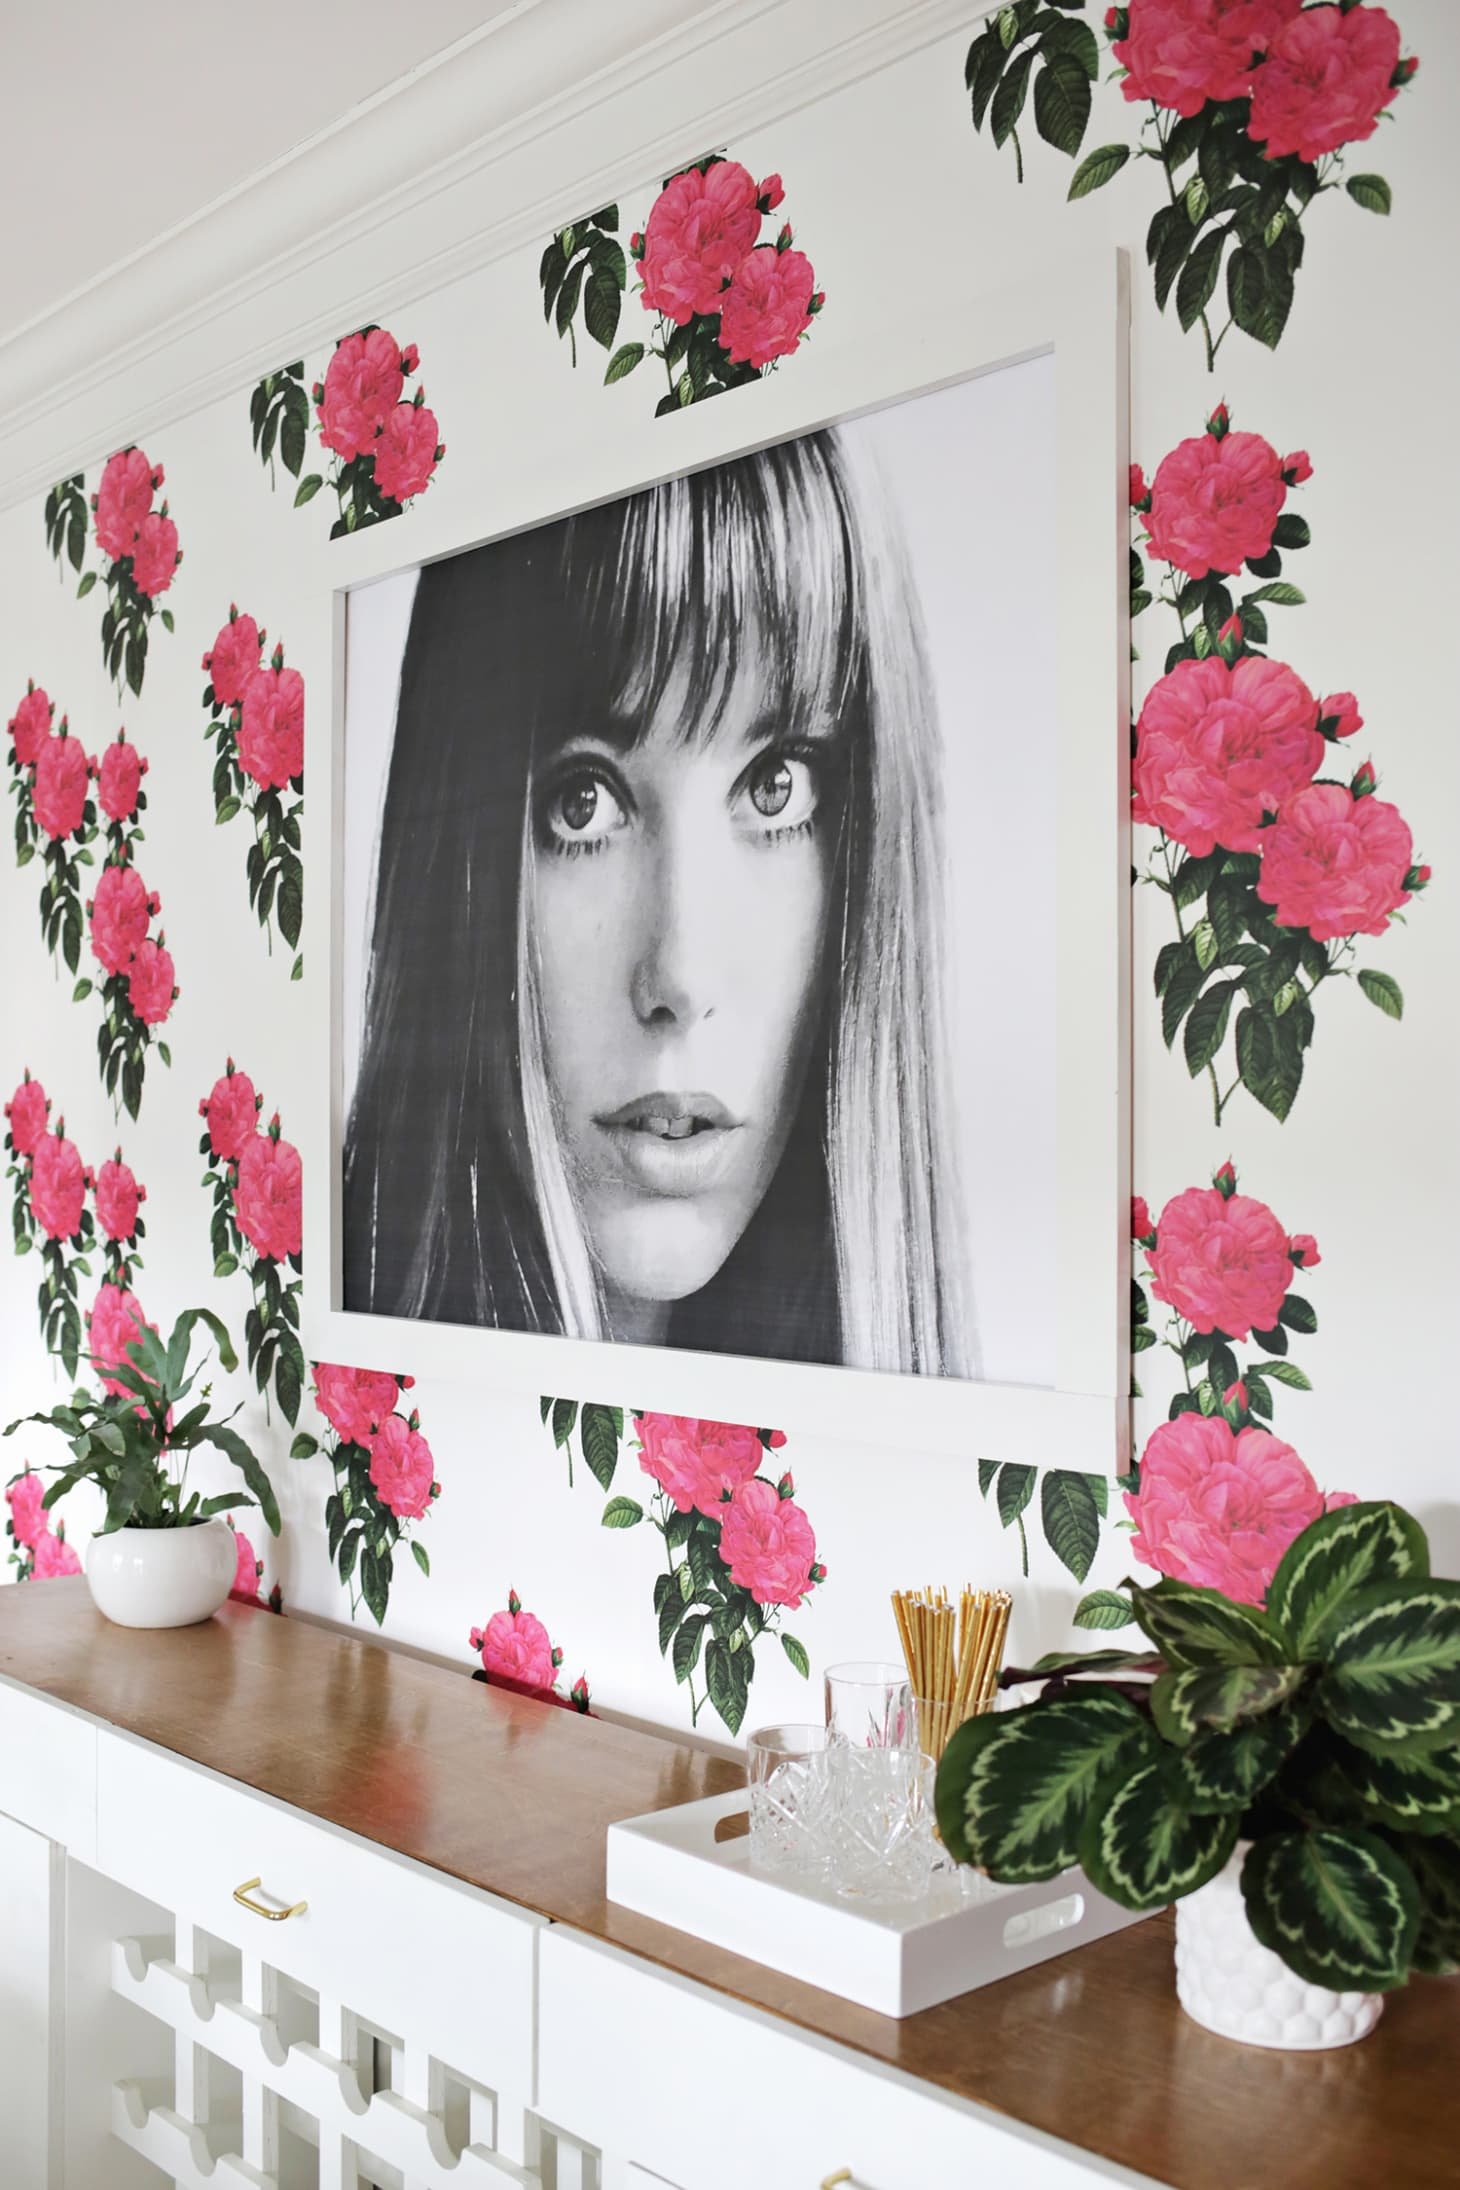 Large Picture Frames You Can Make on the Cheap | Apartment